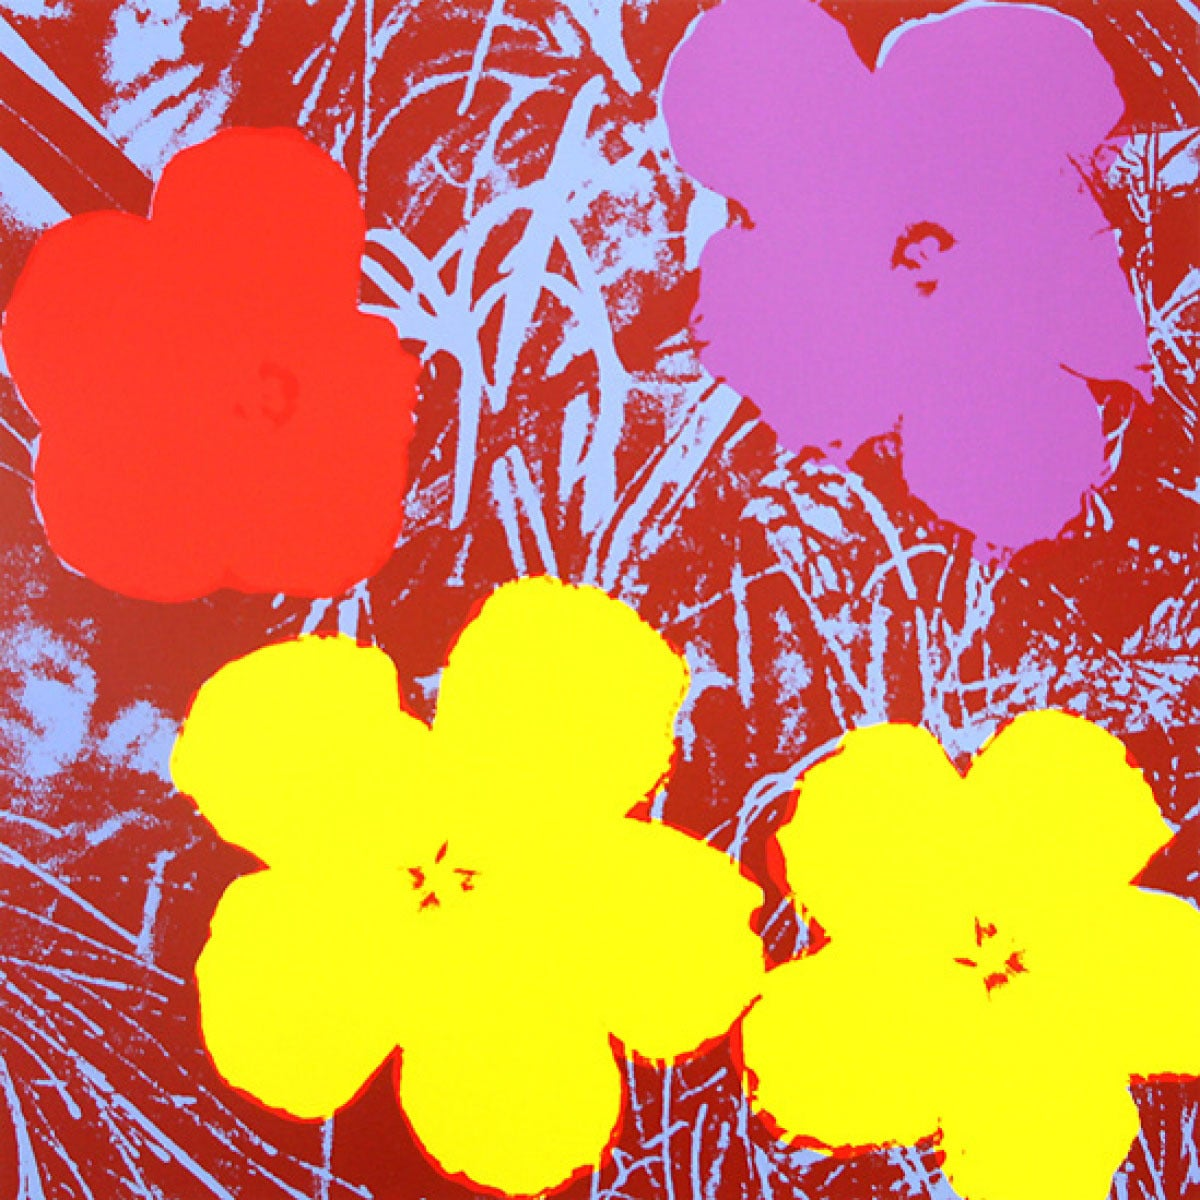 Andy Warhol Flowers Portfolio, 1970 For Sale at 1stdibs